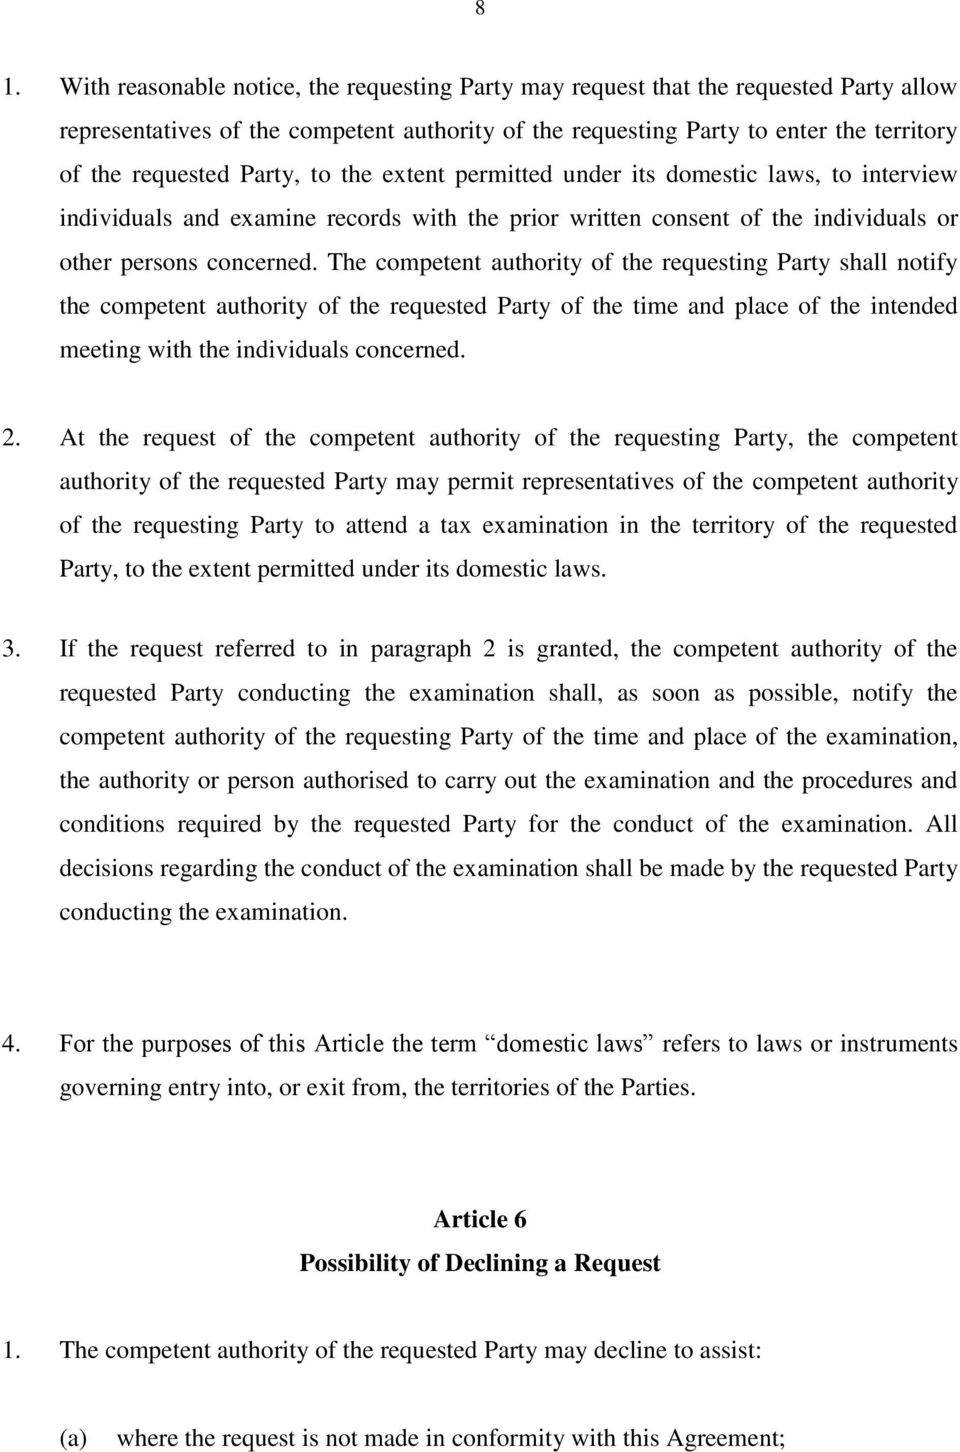 The competent authority of the requesting Party shall notify the competent authority of the requested Party of the time and place of the intended meeting with the individuals concerned. 2.